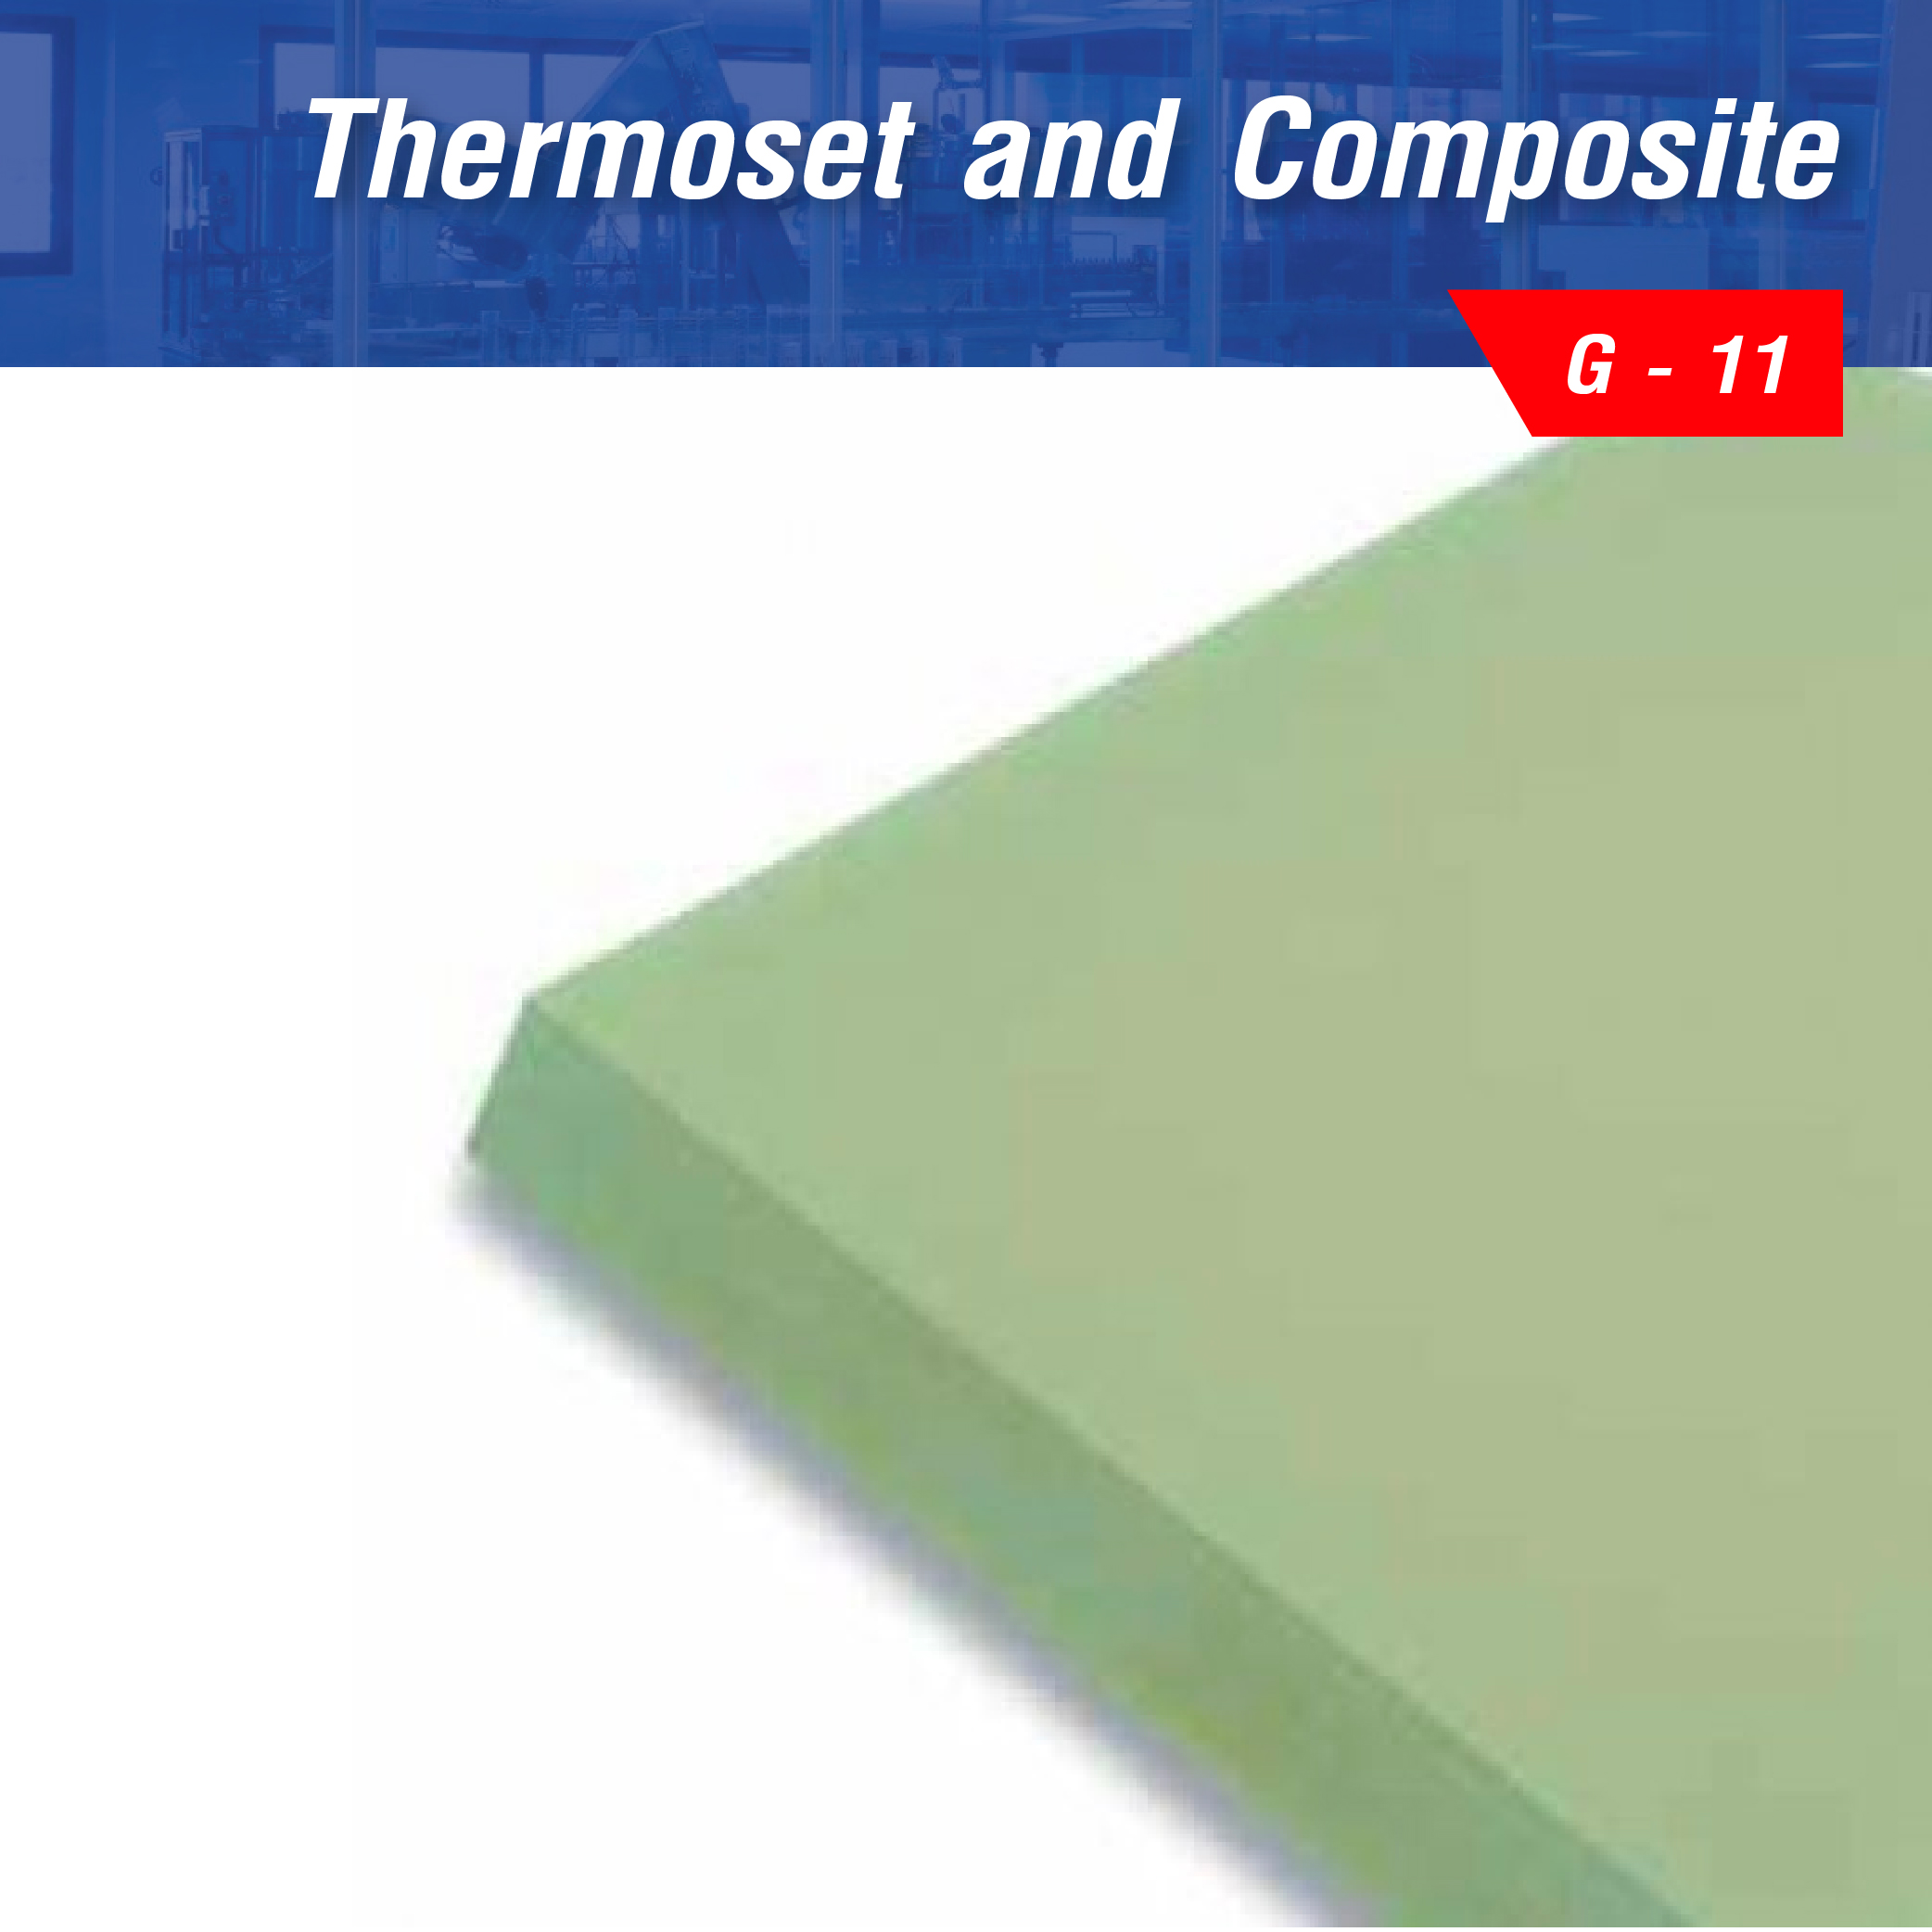 Thermoset and Composite